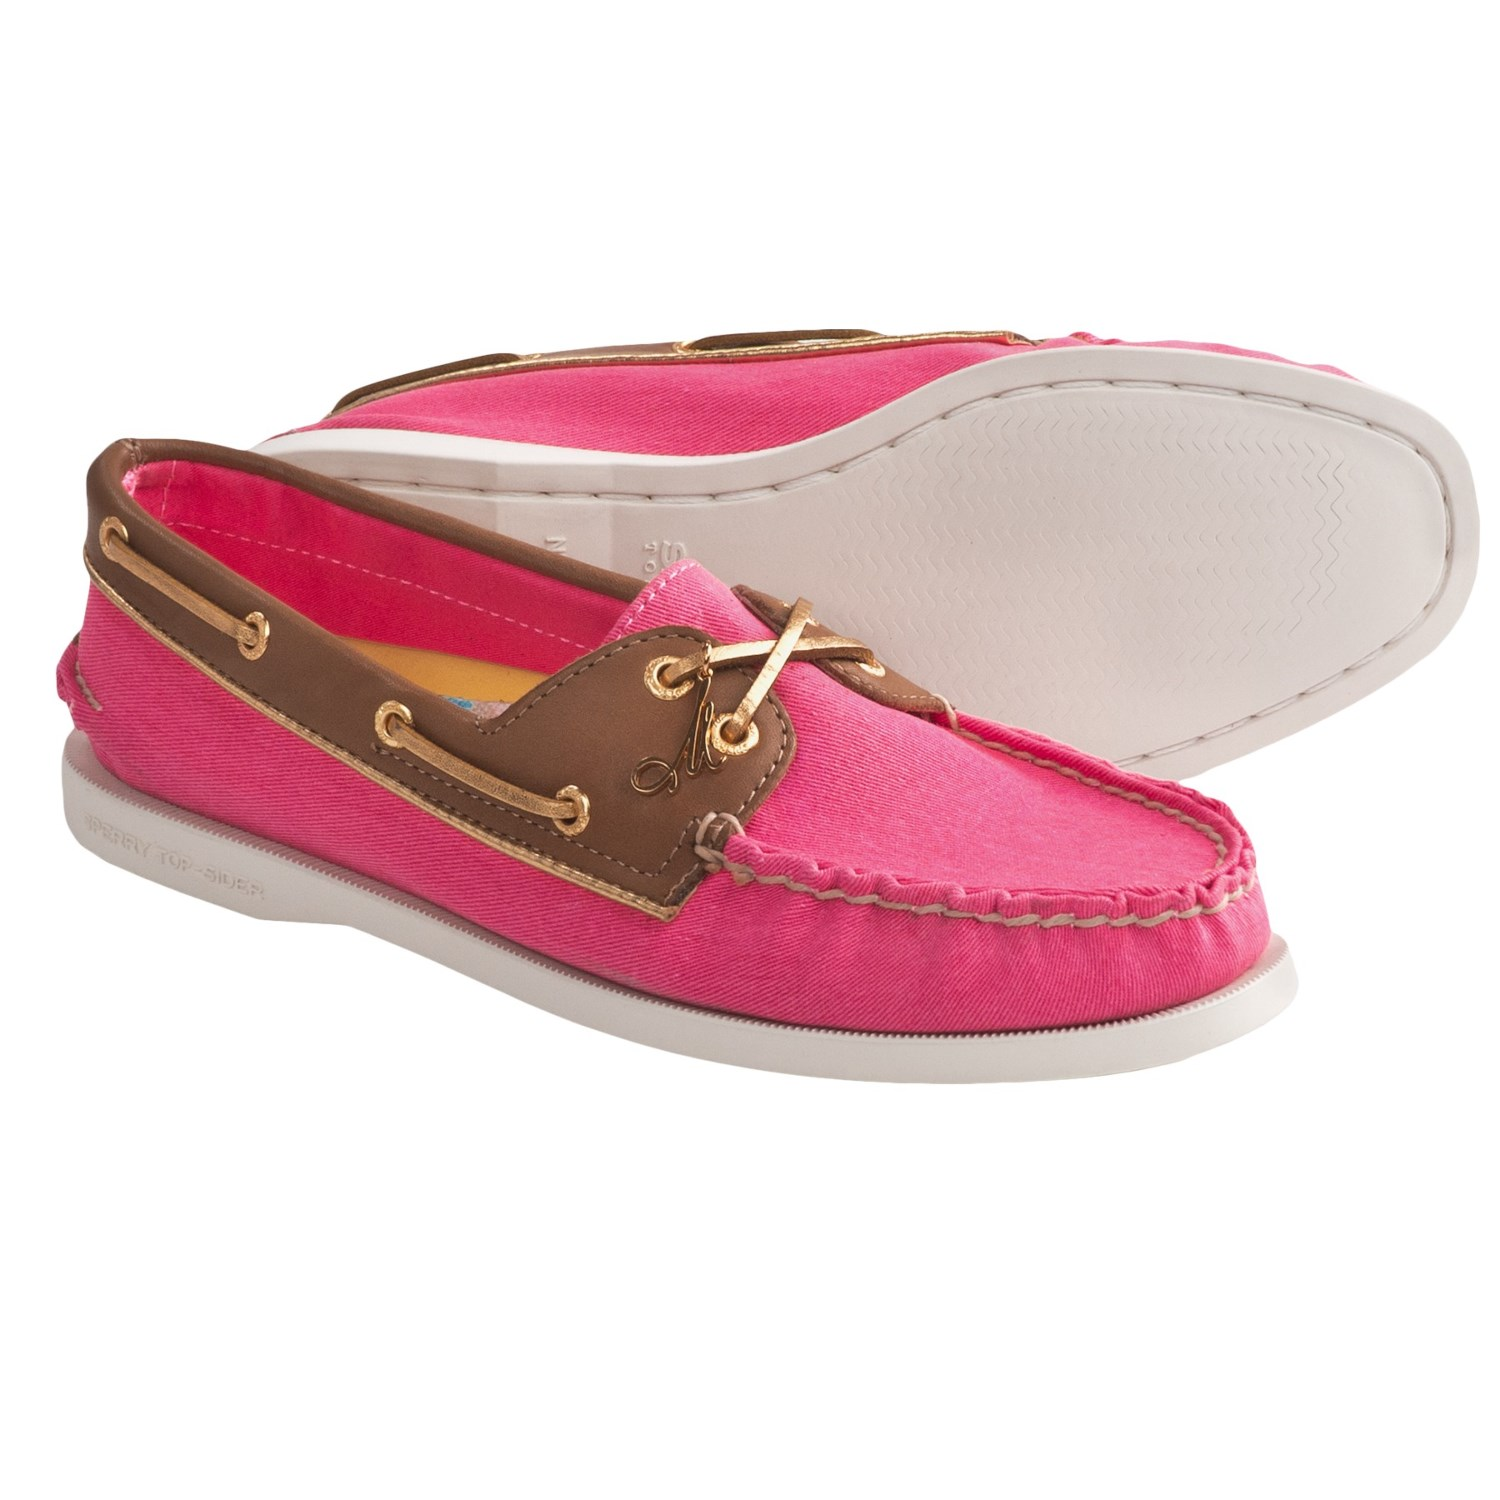 Sperry Top Sider Bluefish 2-Eye Womens Boat Shoes